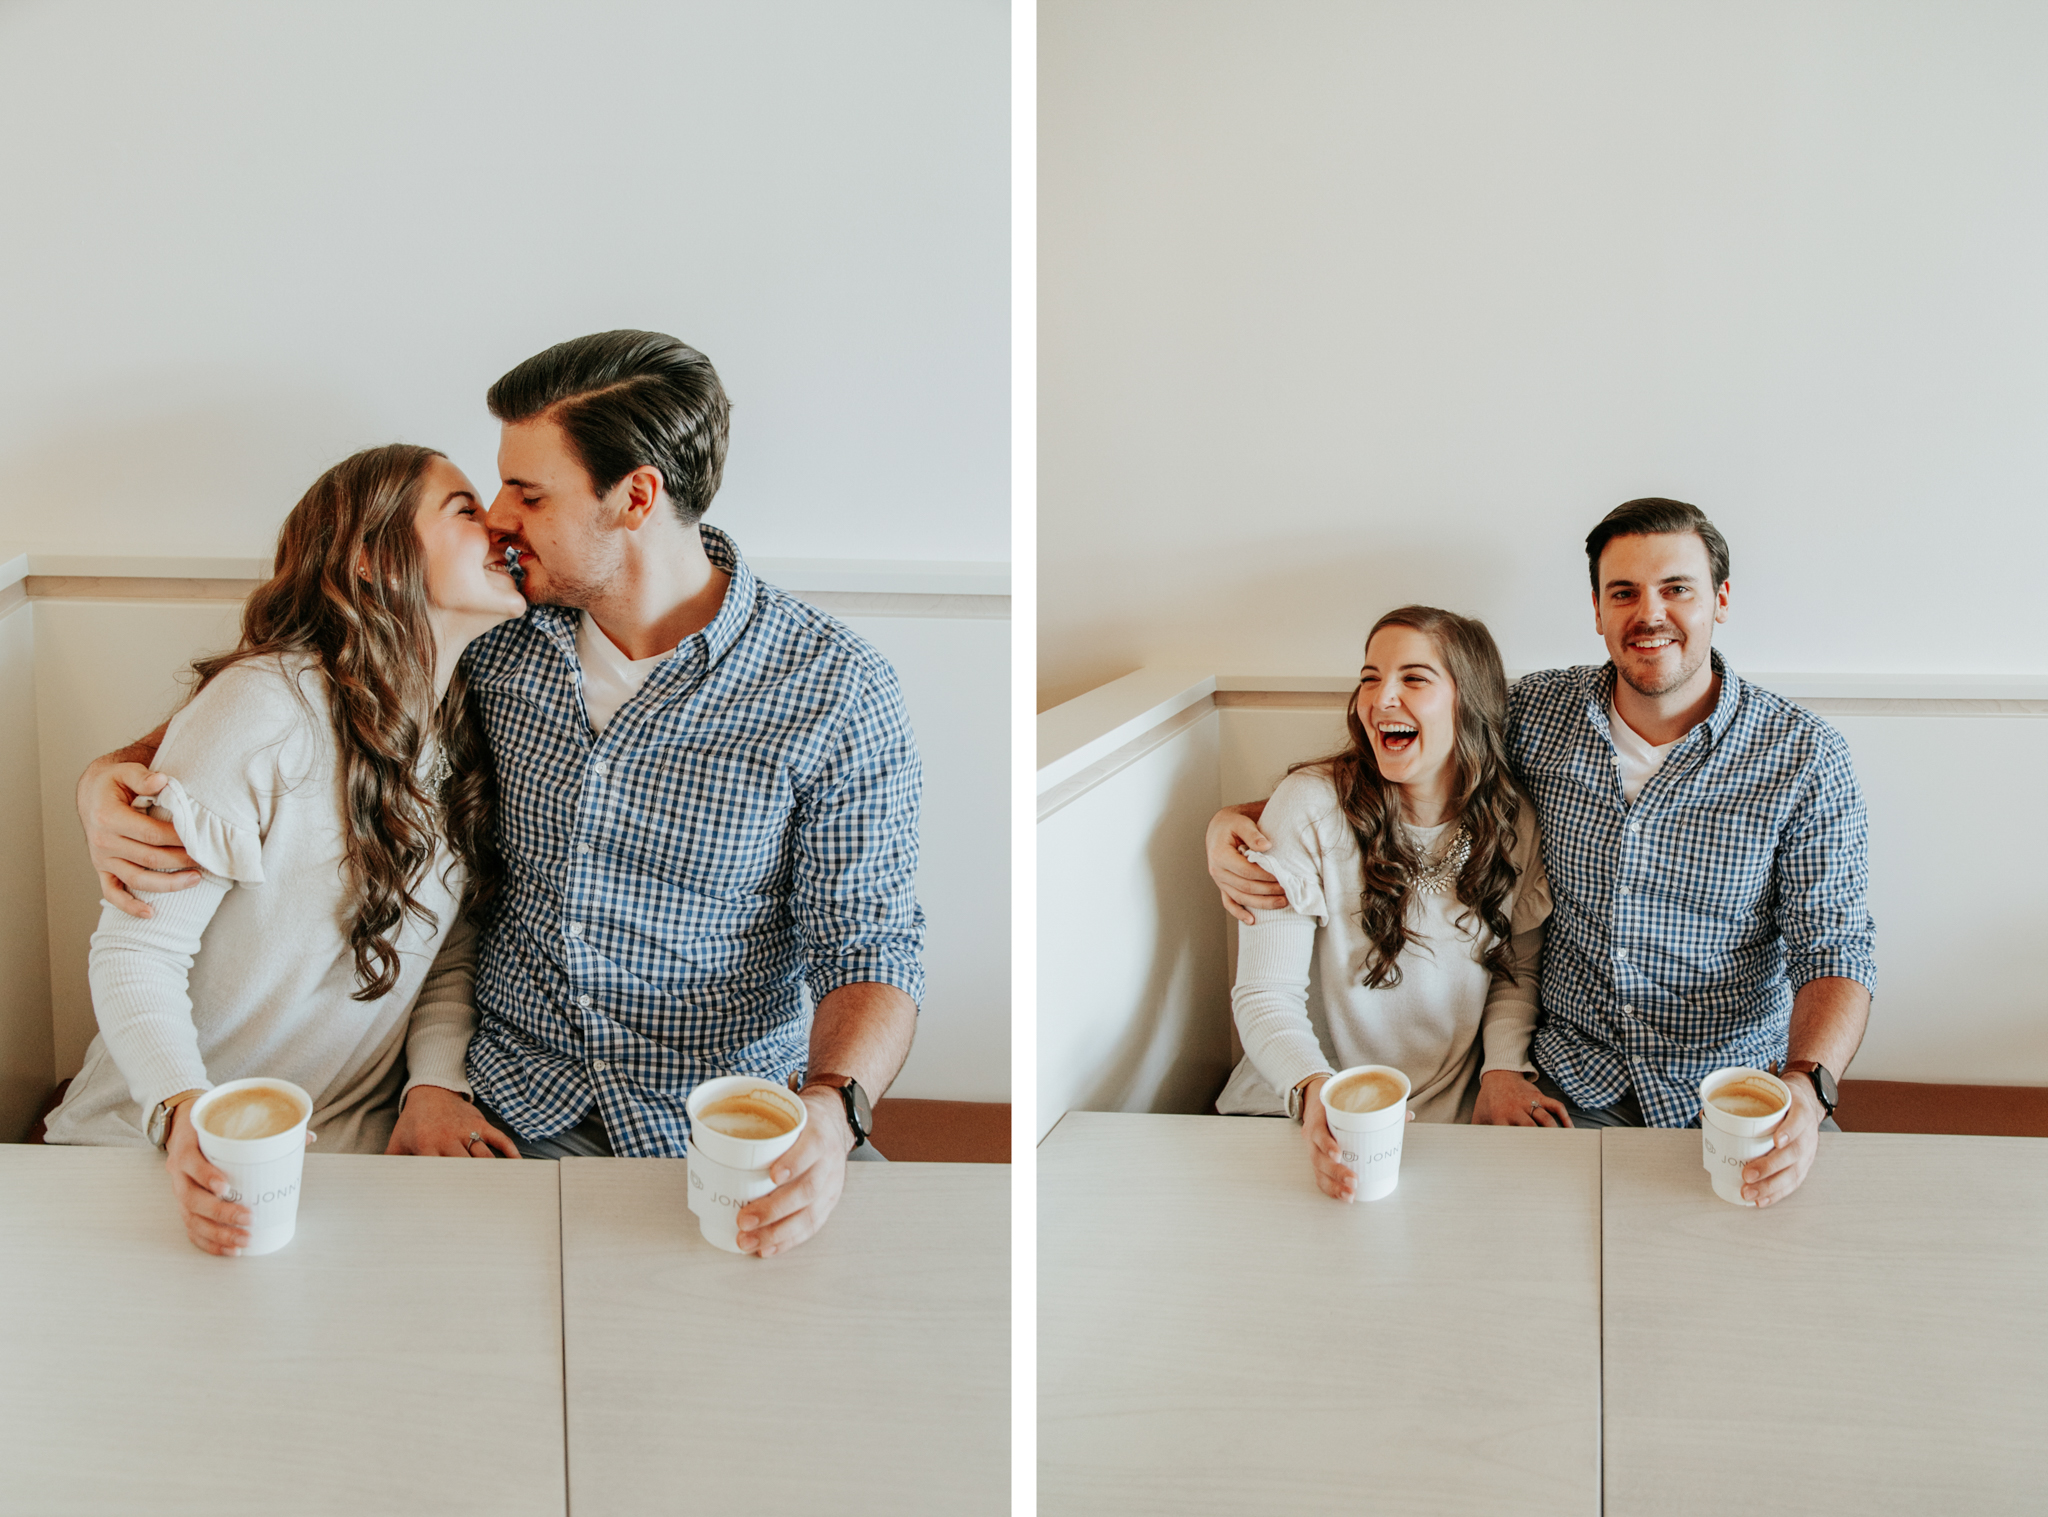 lethbridge-photographer-love-and-be-loved-photography-jonny-bean-coffee-shop-emma-tanner-engagement-picture-image-photo-402.jpg